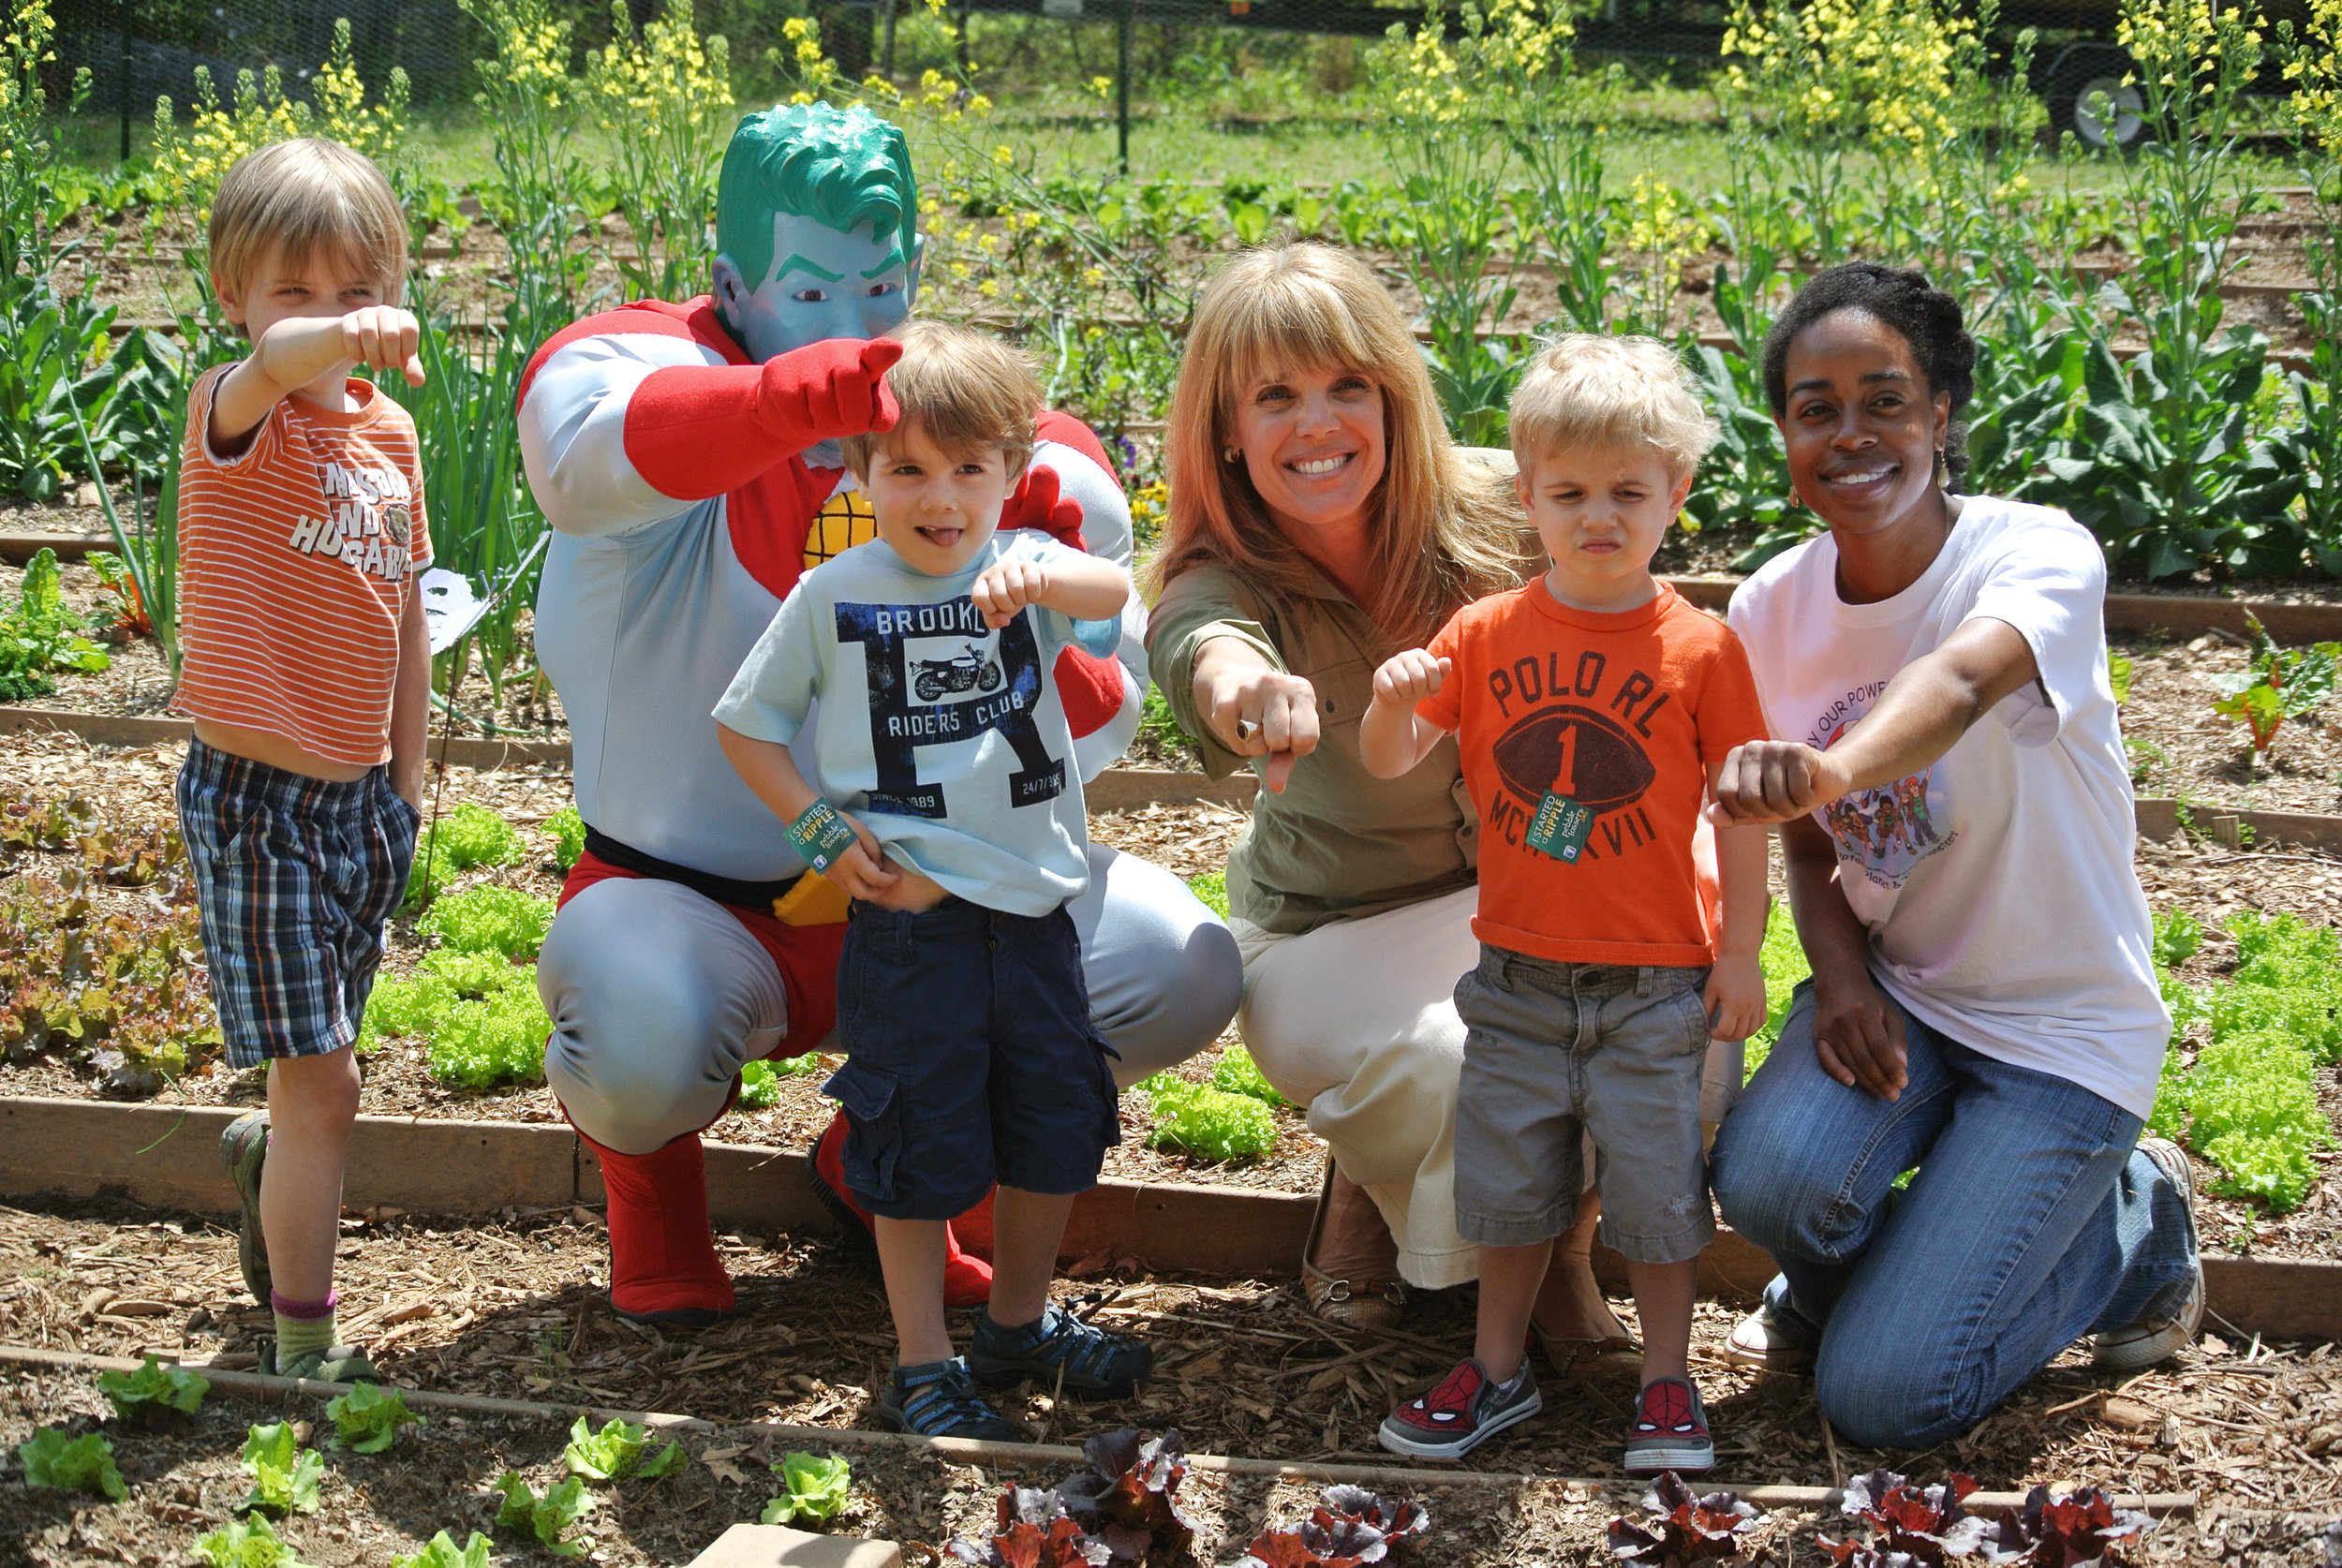 Laura Turner Seydel, Captain Planet and friends at the school gardens program.